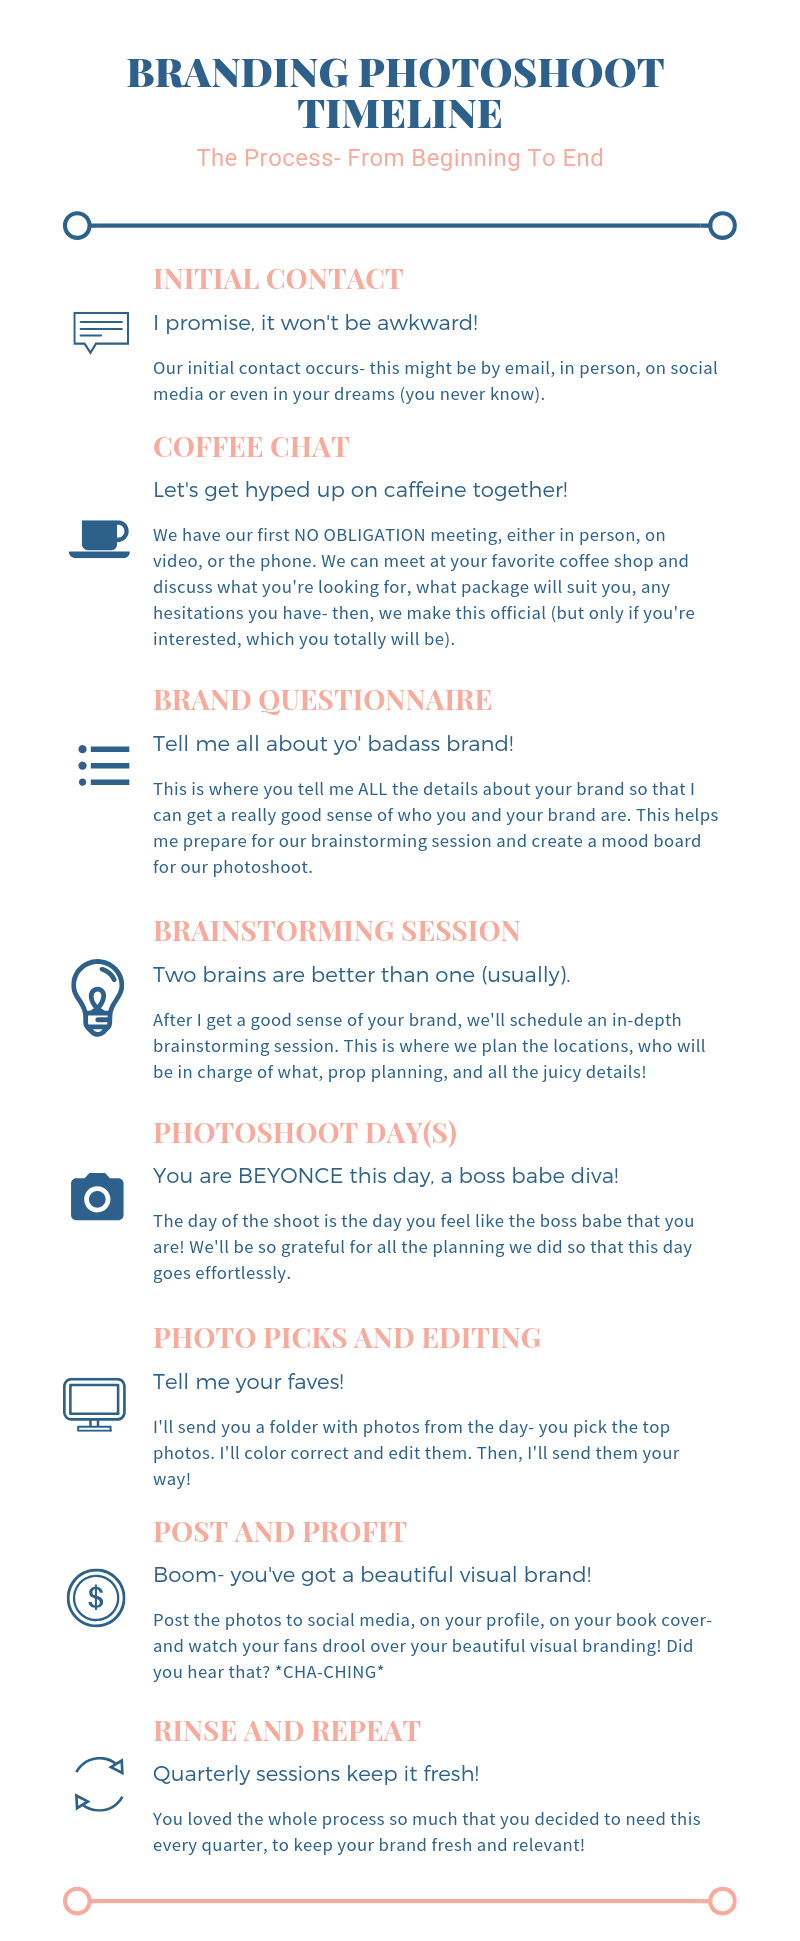 The branding photoshoot timeline includes all the steps in the personal branding photoshoot process, from initial contact til you post, profit, rinse and repeat.  Initial contact starts with you contacting me by email, phone, video chat or in person. Then you book a call with me.  Once you schedule your call with me(I call them coffee chats), we will want to discuss what you want out of my photography services and how I can make this an easy process for you!  After the coffee chat, you can either book your date with me and pay the deposit or fill out the brand questionnaire to make sure you have it all figured out before you book!  After you book with me, that date is reserved for you. Then it's time to plan! After you fill out the brand questionnaire, we plan by doing a Brand Brainstorm session together. Then I send you a confirmation of what we talked about, any action plans and a mood board/shot list that covers everything you will need for your photoshoot.  Then- you are a diva for a day during the photoshoot!  After I take your photos, I will gather the best ones and possibly as you to pick between some if there is a lot of different choices. Then, you will confirm and I edit them in the way that you want (we will discuss this in prior sessions).  Then, you post and profit and then book your next session with me in the next quarter. Rinse and repeat every quarter to keep your photography relevant, fresh and up-to-date